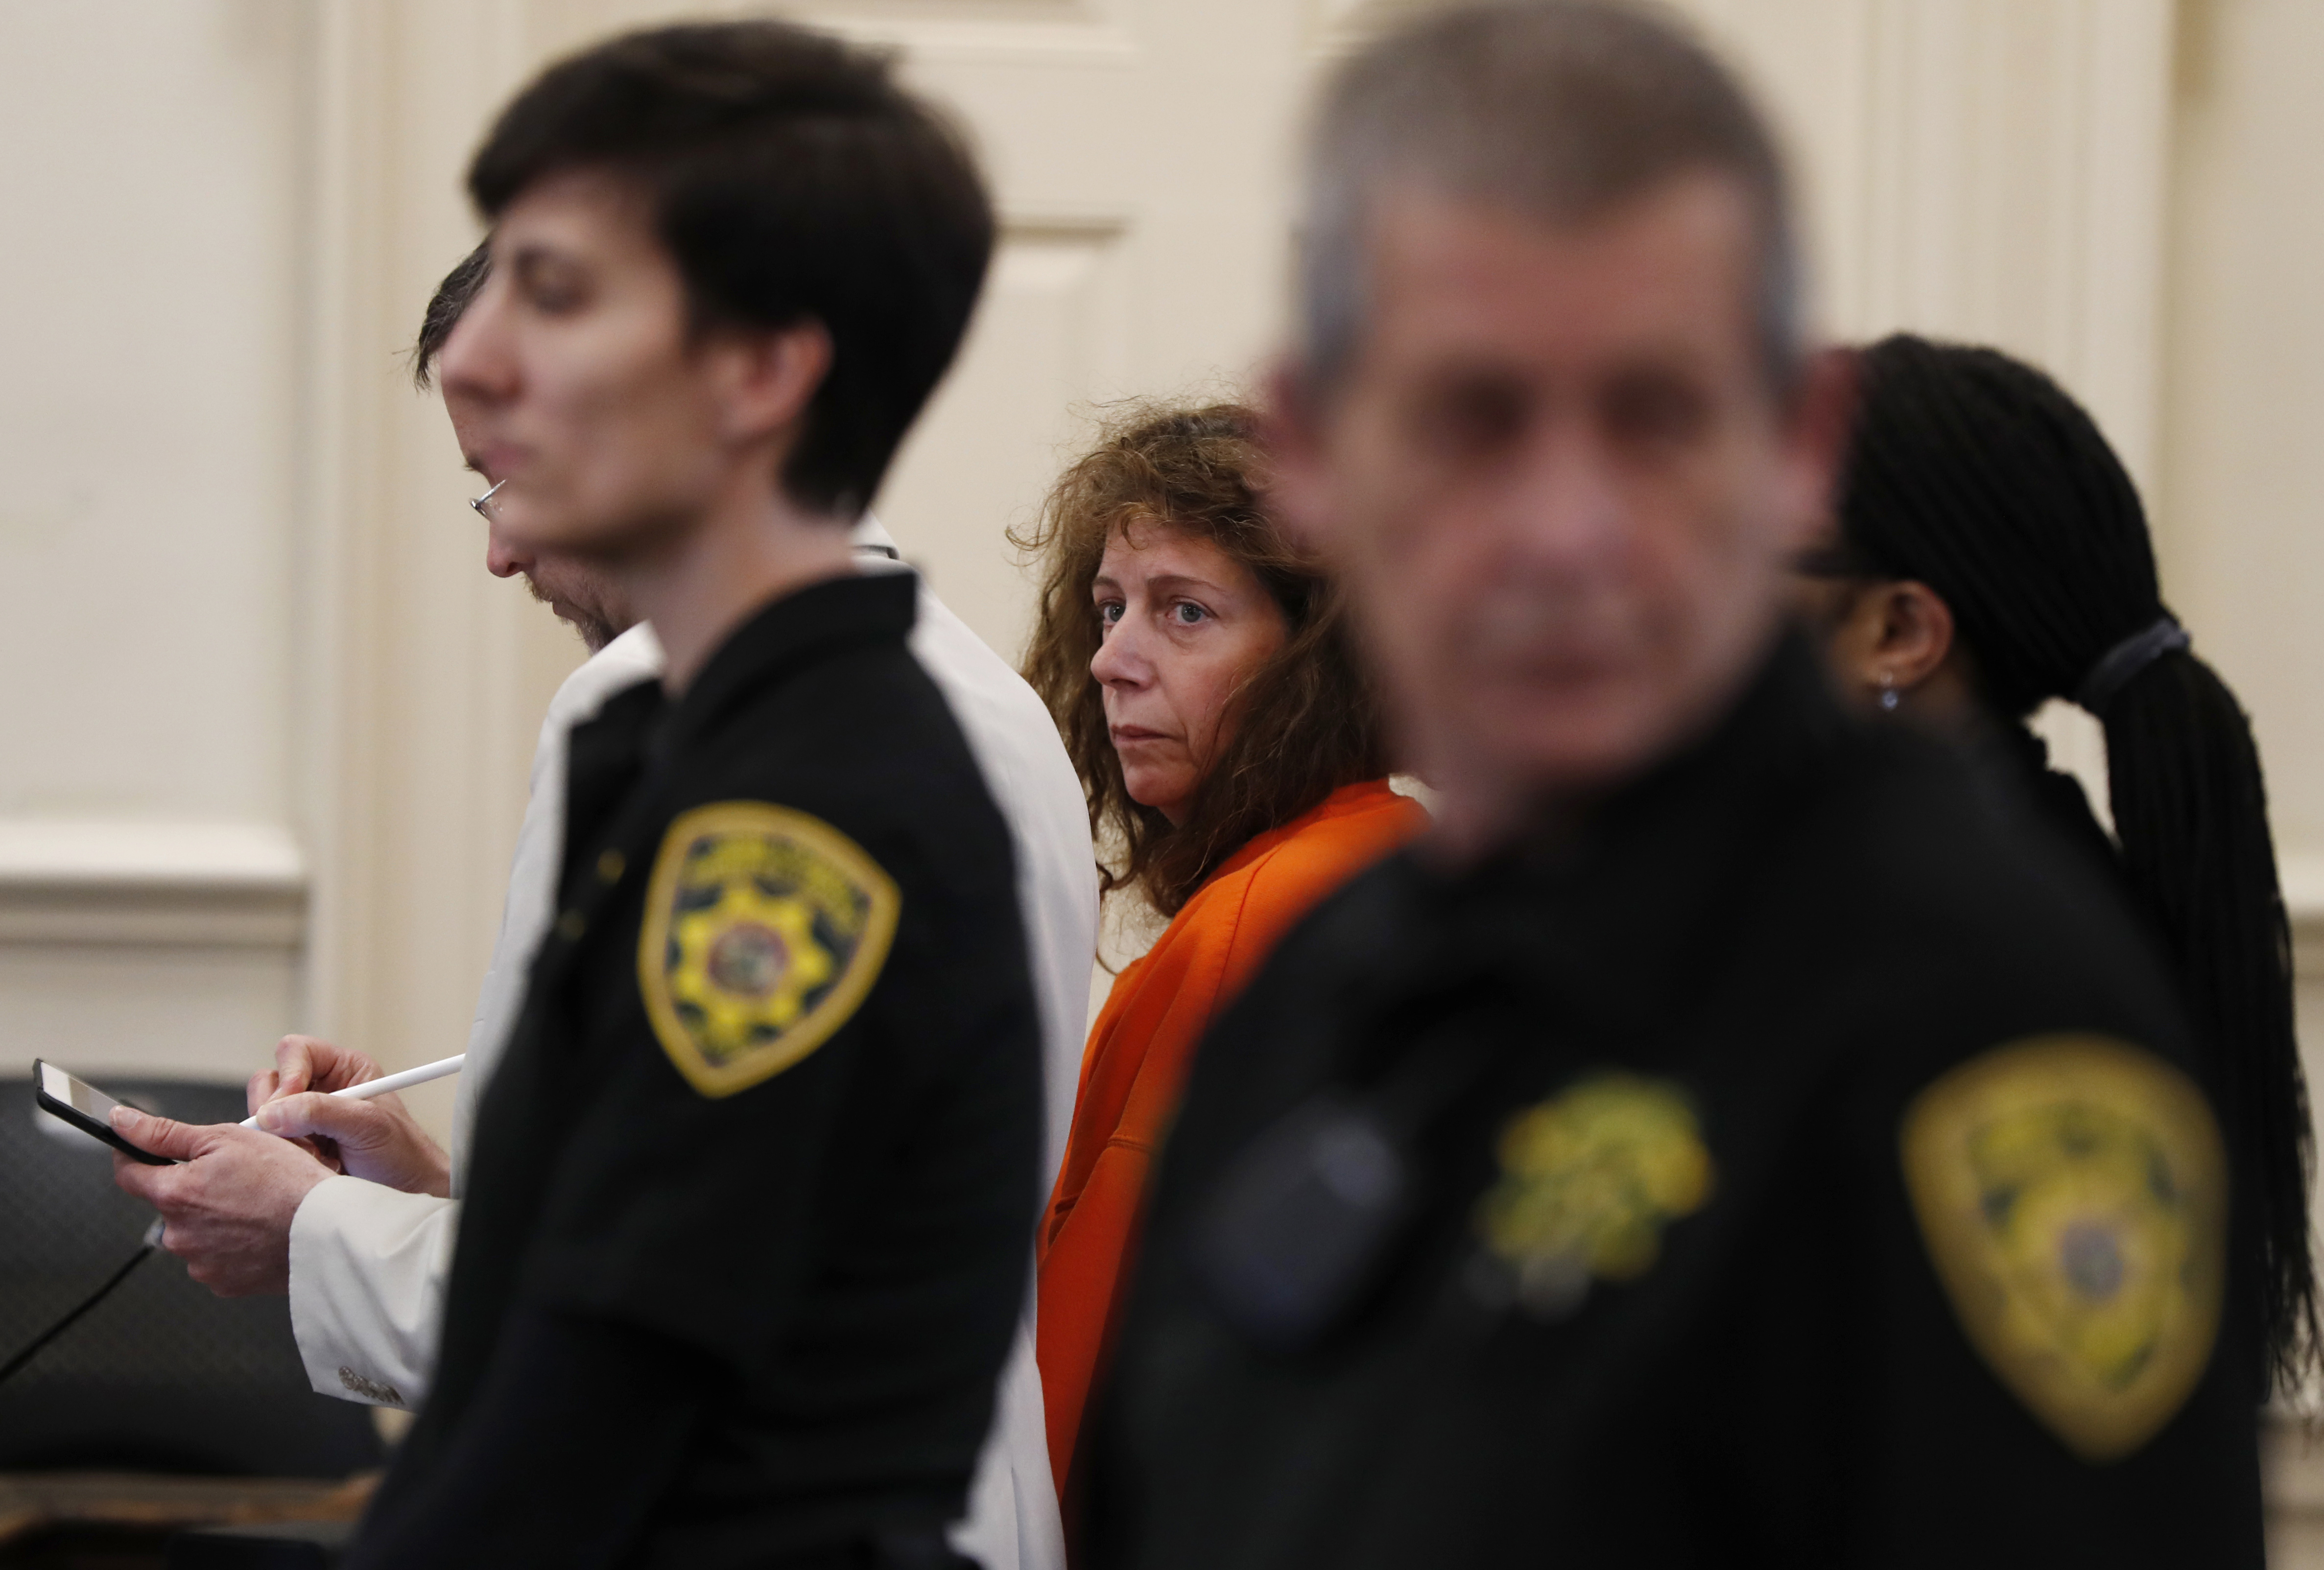 Carol Sharrow, of Sanford, Maine, stands for her arraignment on manslaughter charges at the York County Superior Court in Alfred, Maine on June 4, 2018.